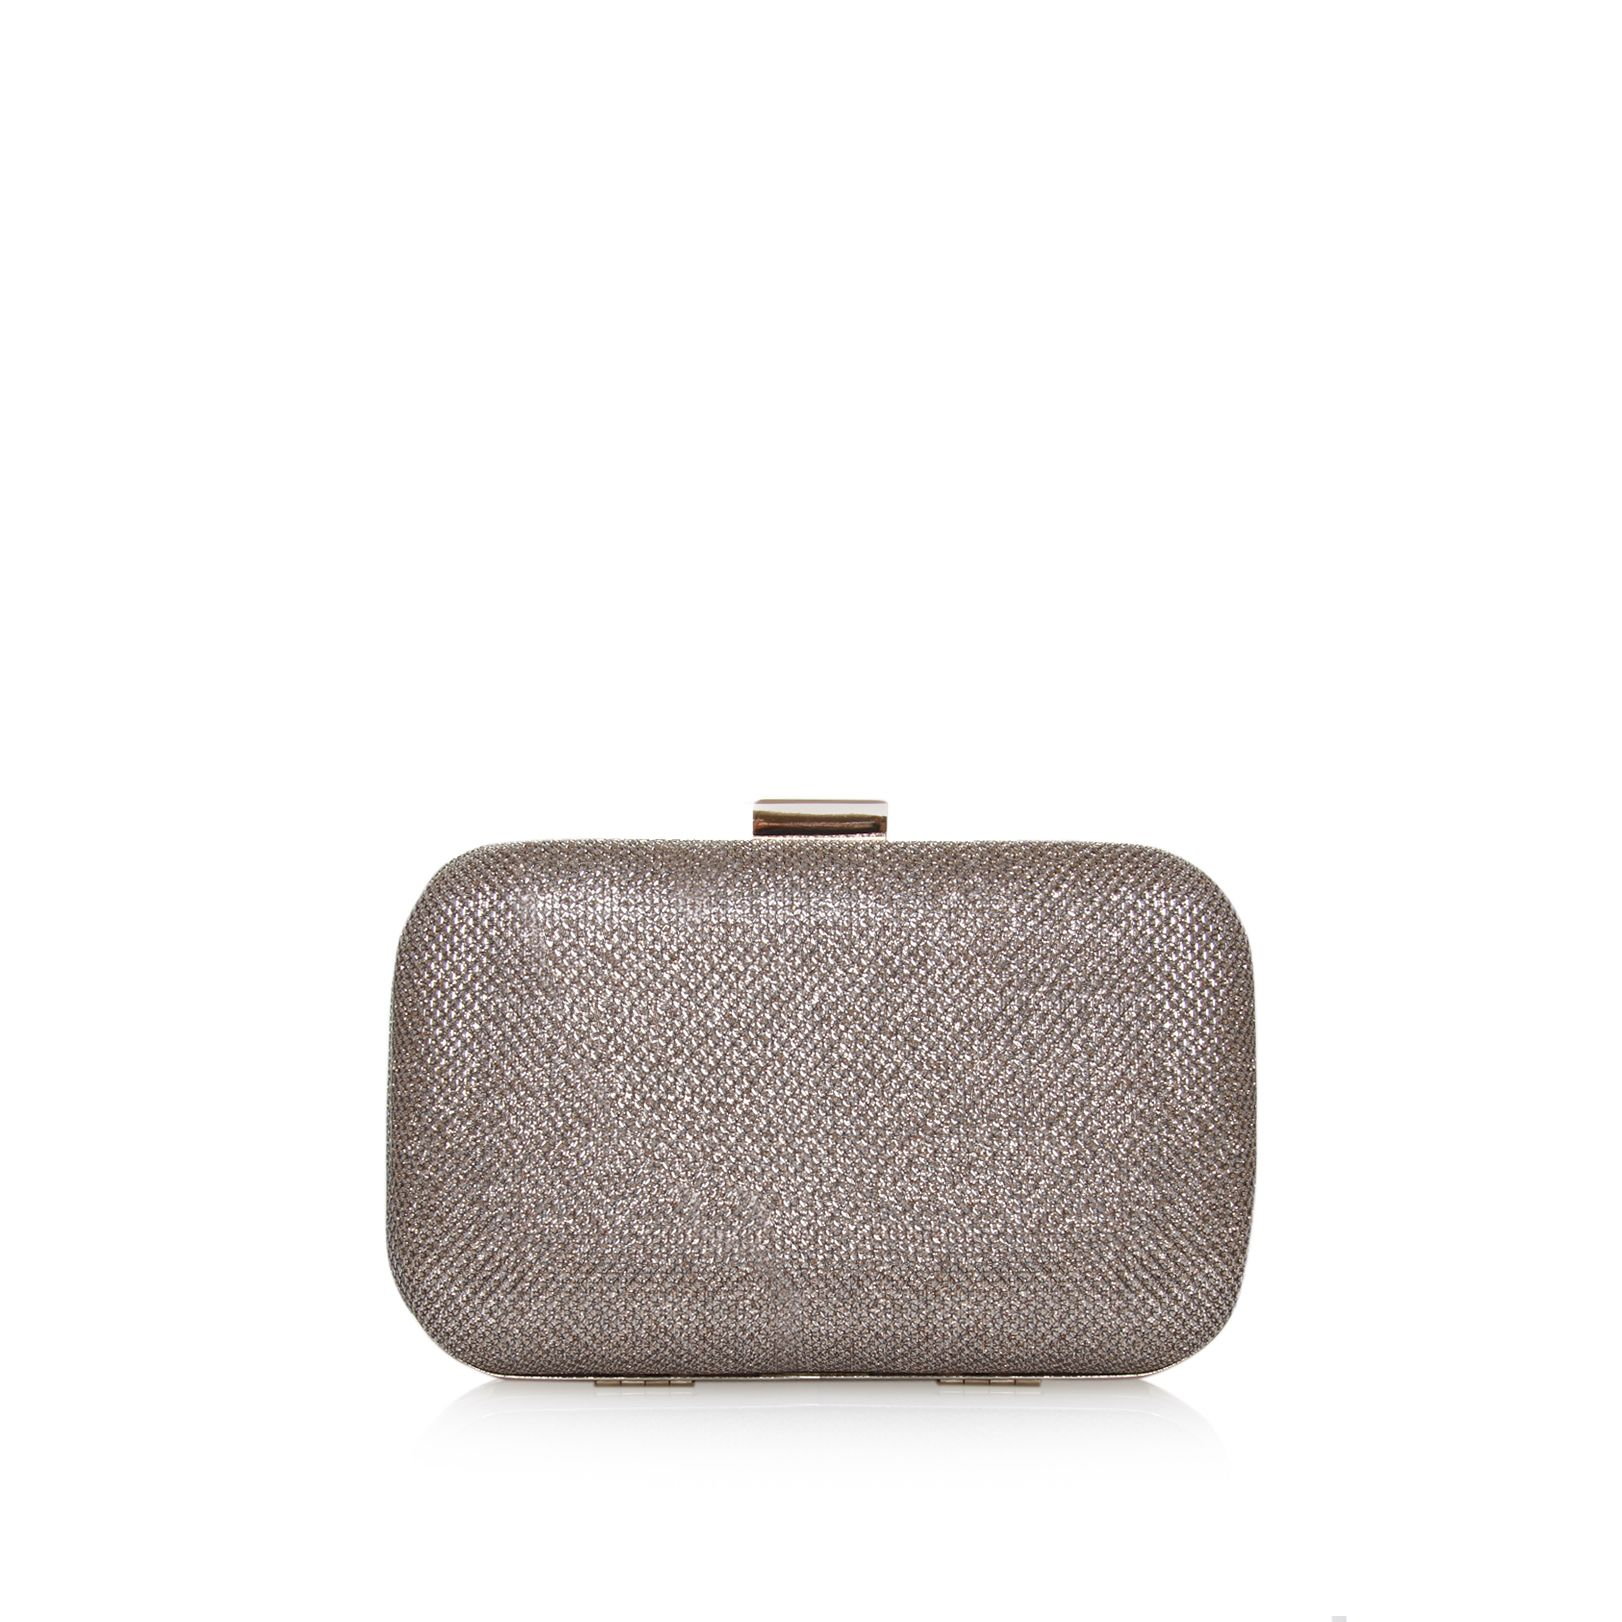 Darcy gold box clutch bag